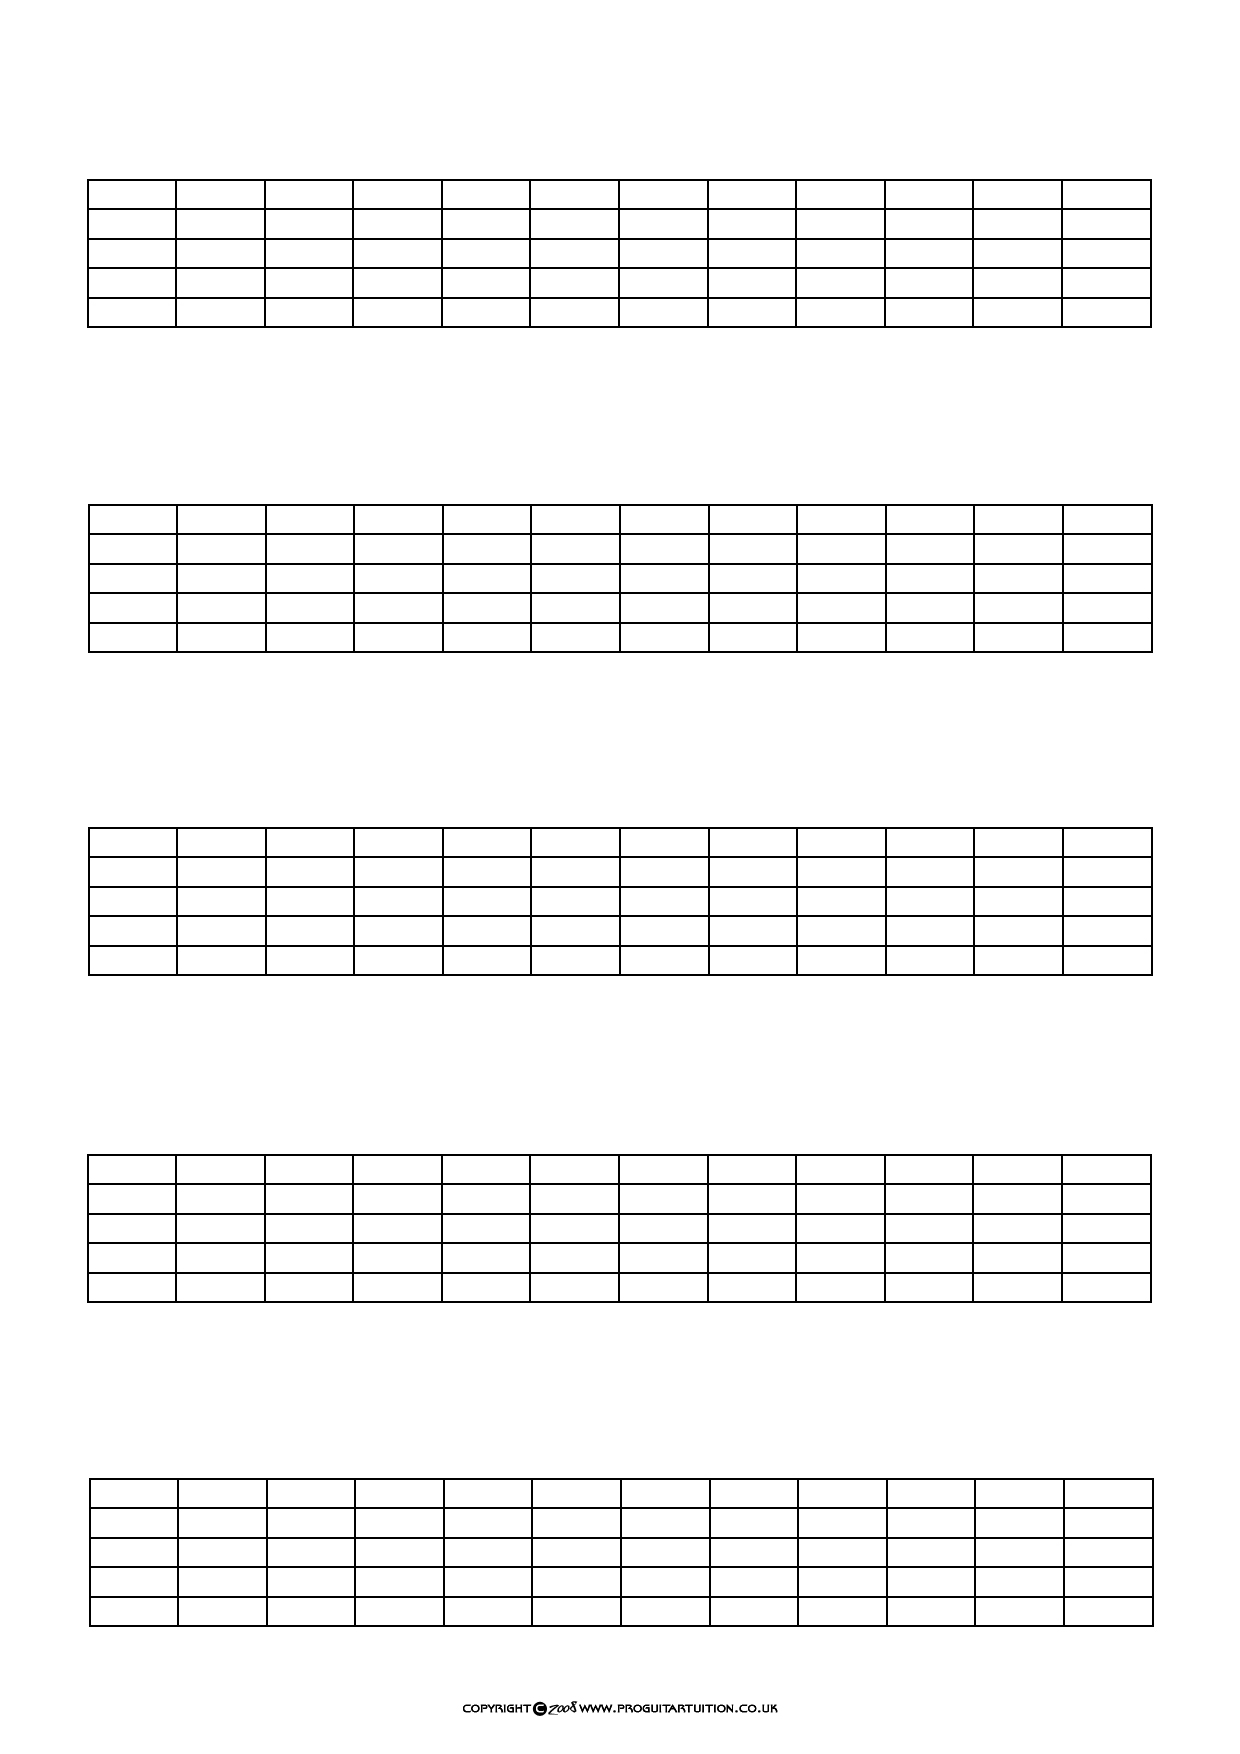 Guitar Resources Pro Guitar Tuition